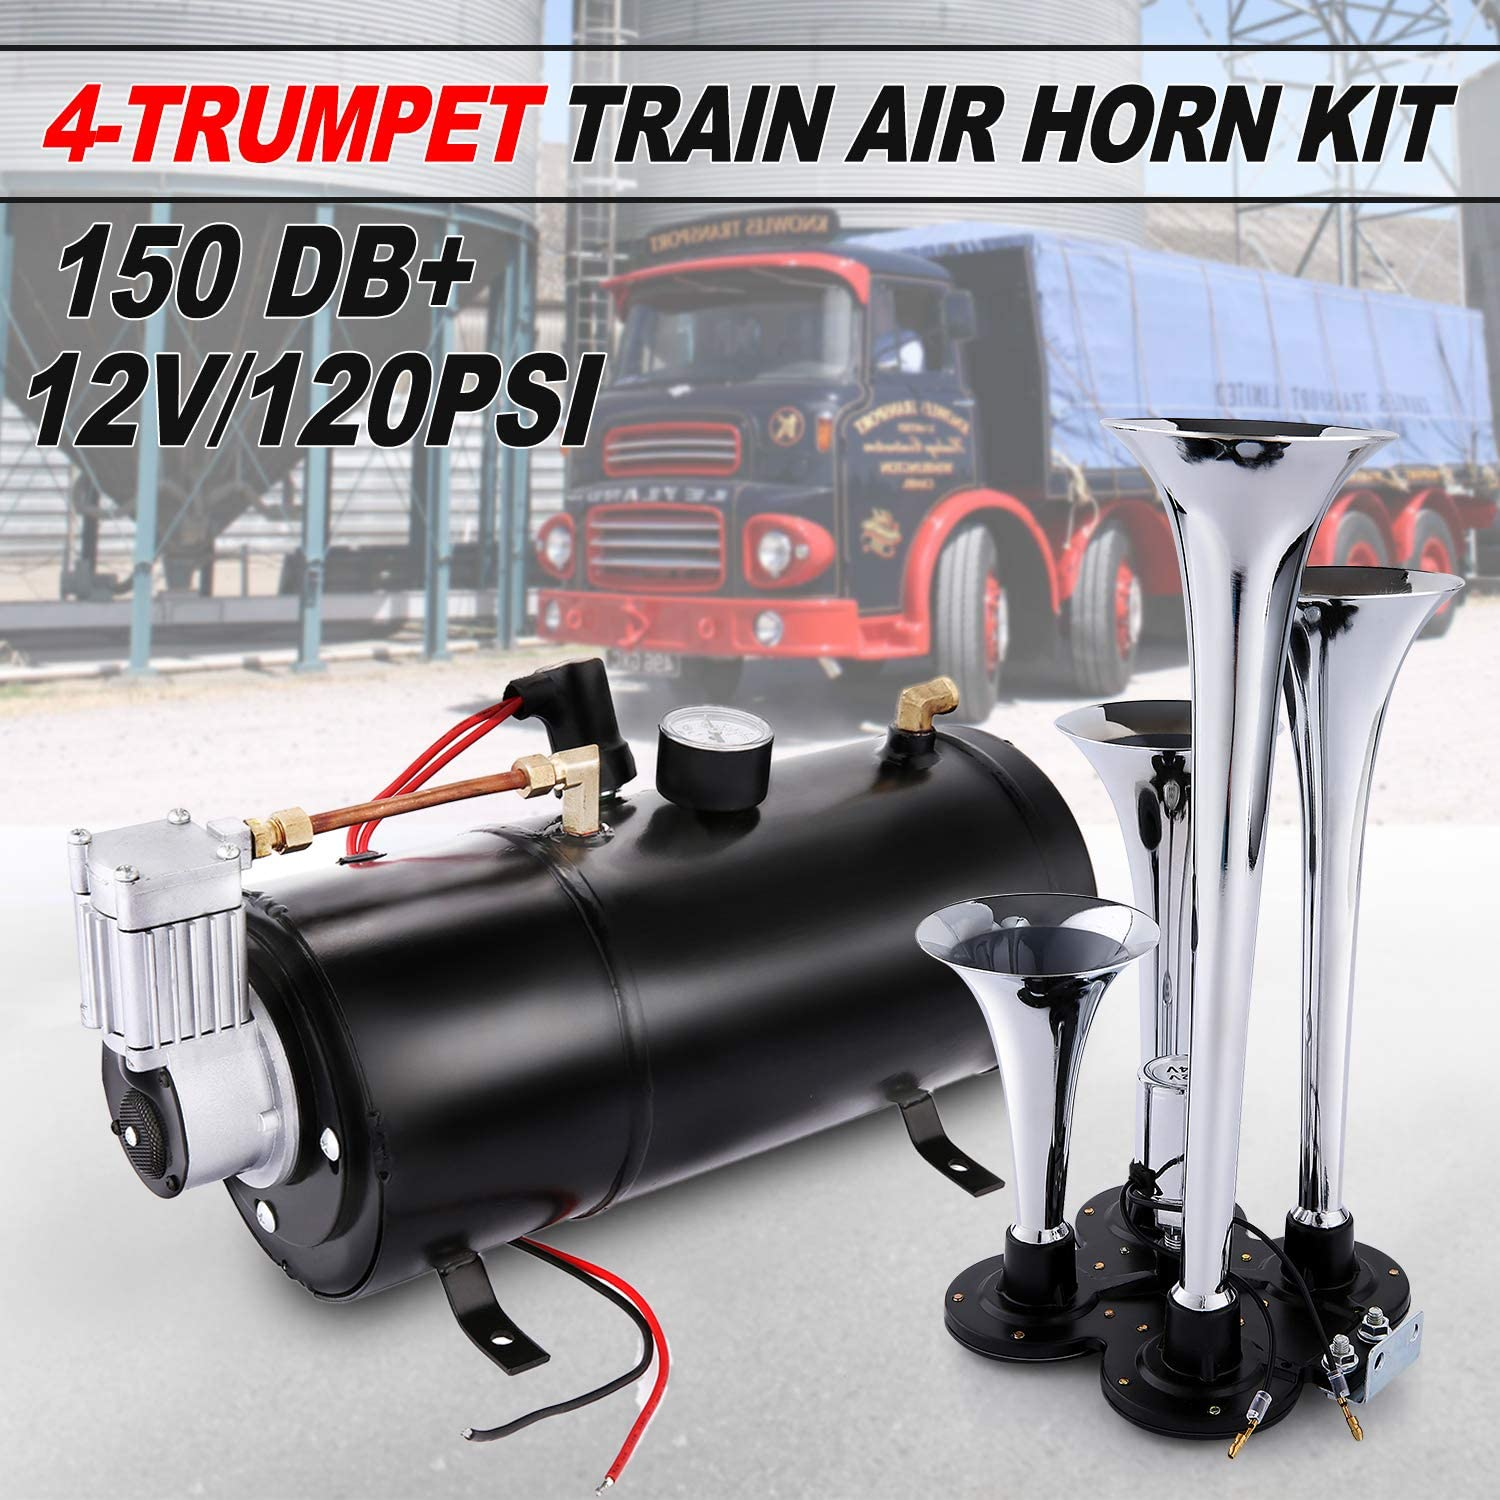 WATERWICH 4 Trumpet Train Air Horn Kit with 150 PSI Air Compressor 1.59 Gal Air Tank Super Loud 150DB for Vehicle Truck Lorry Boat Car Van SUV Jeep